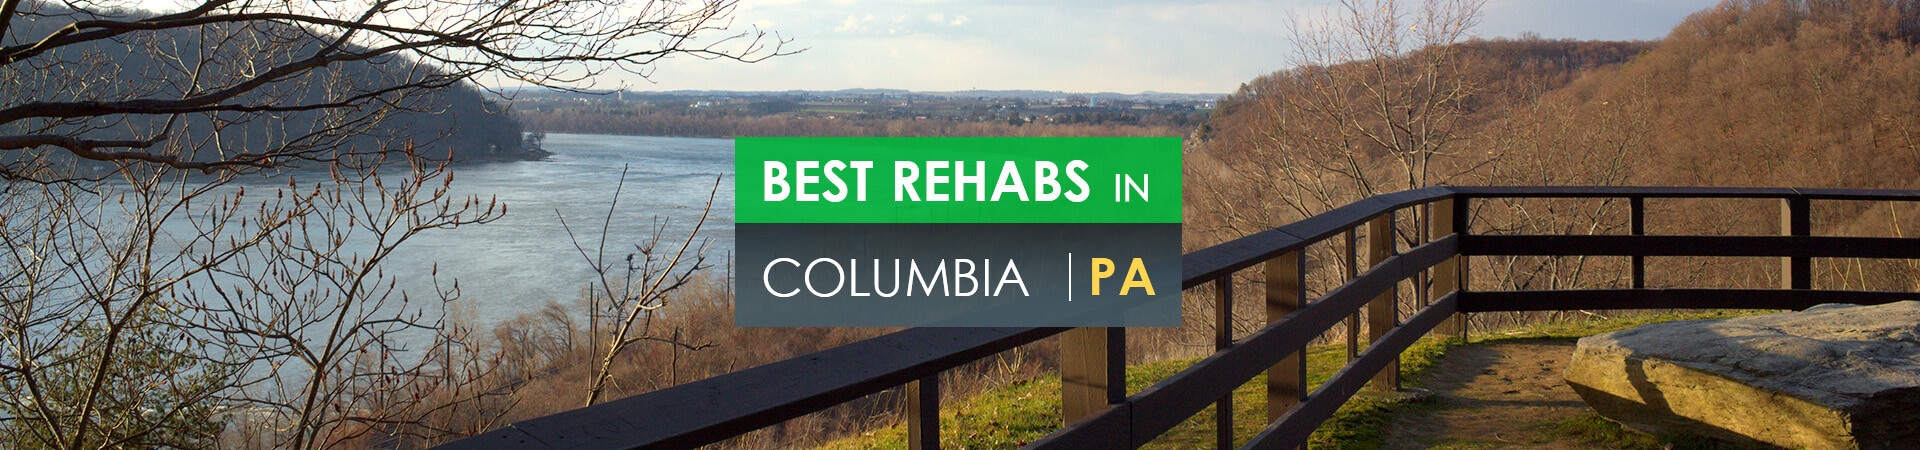 Best rehabs in Columbia, PA